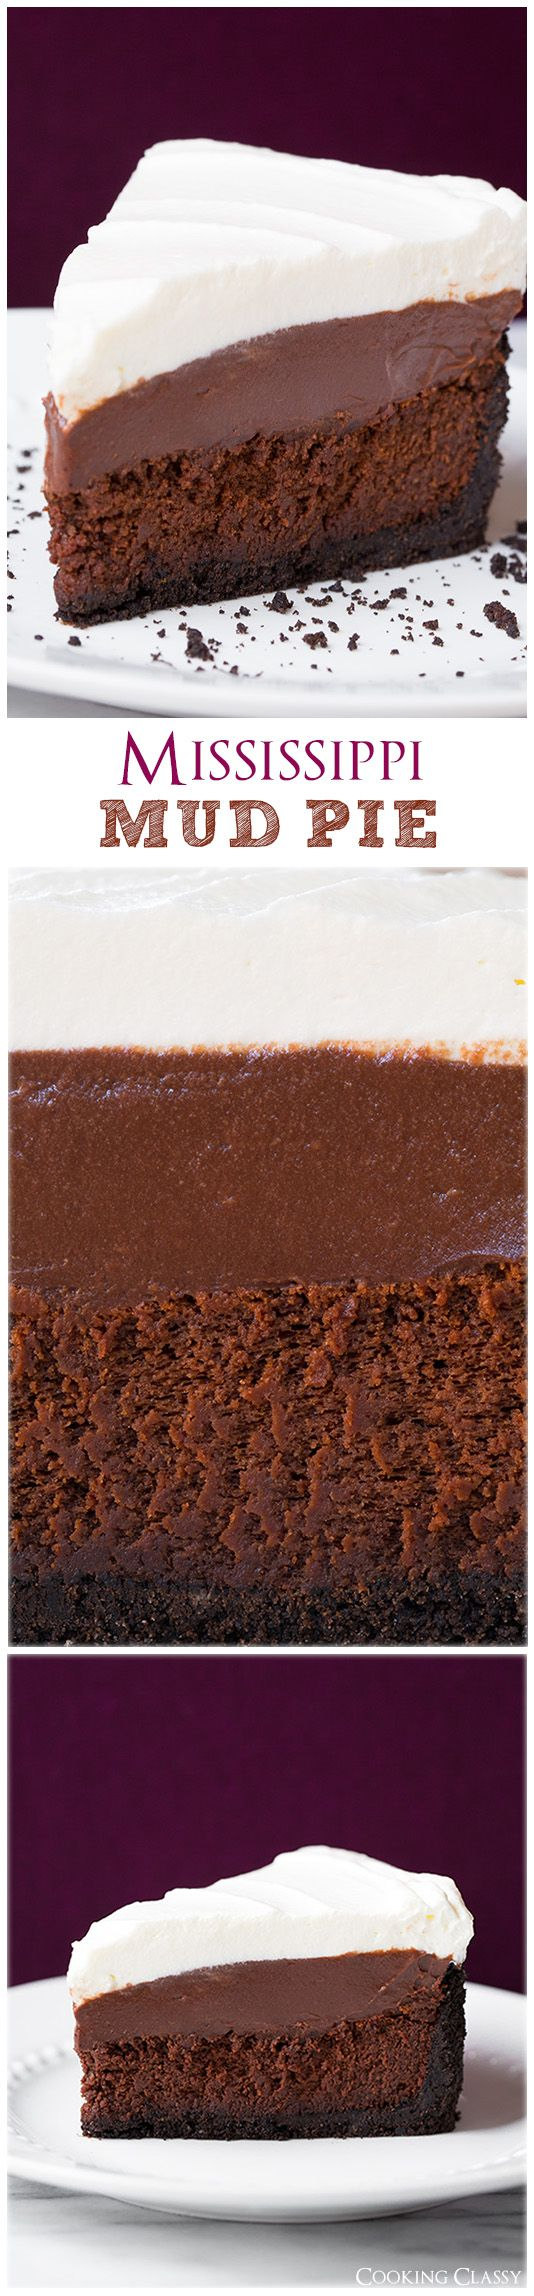 Mississippi Mud Pie - This pie is seriously dreamy!! Four layers of total deliciousness!